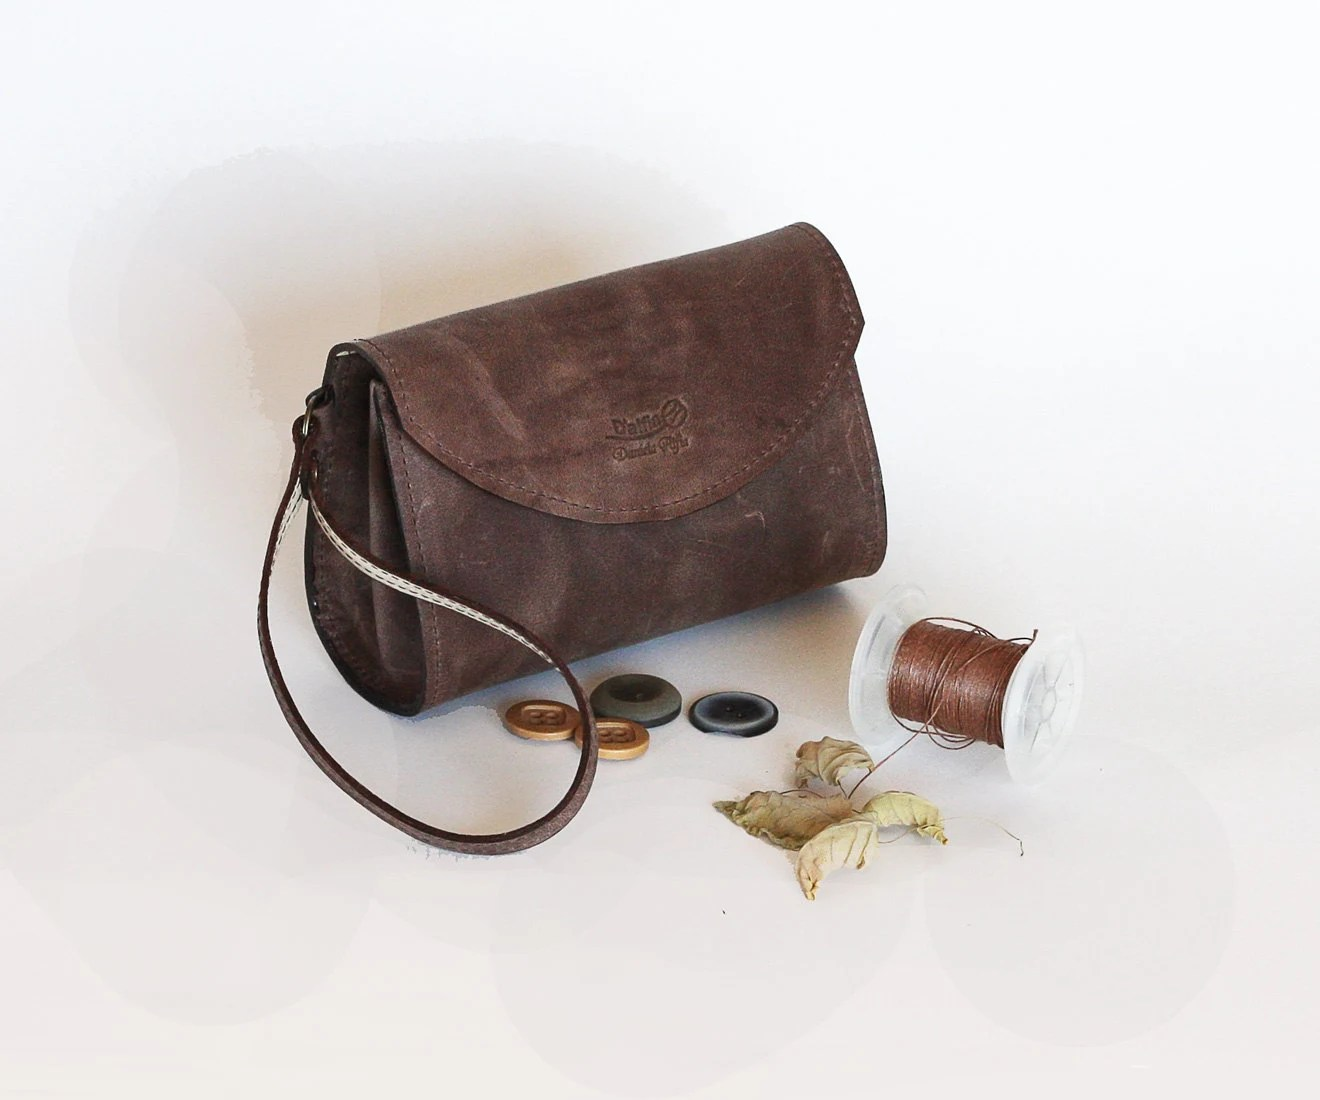 Leather bag, Brown leather wristlet,  Dalfia leather handbag, evening and everyday bag - Dalfia